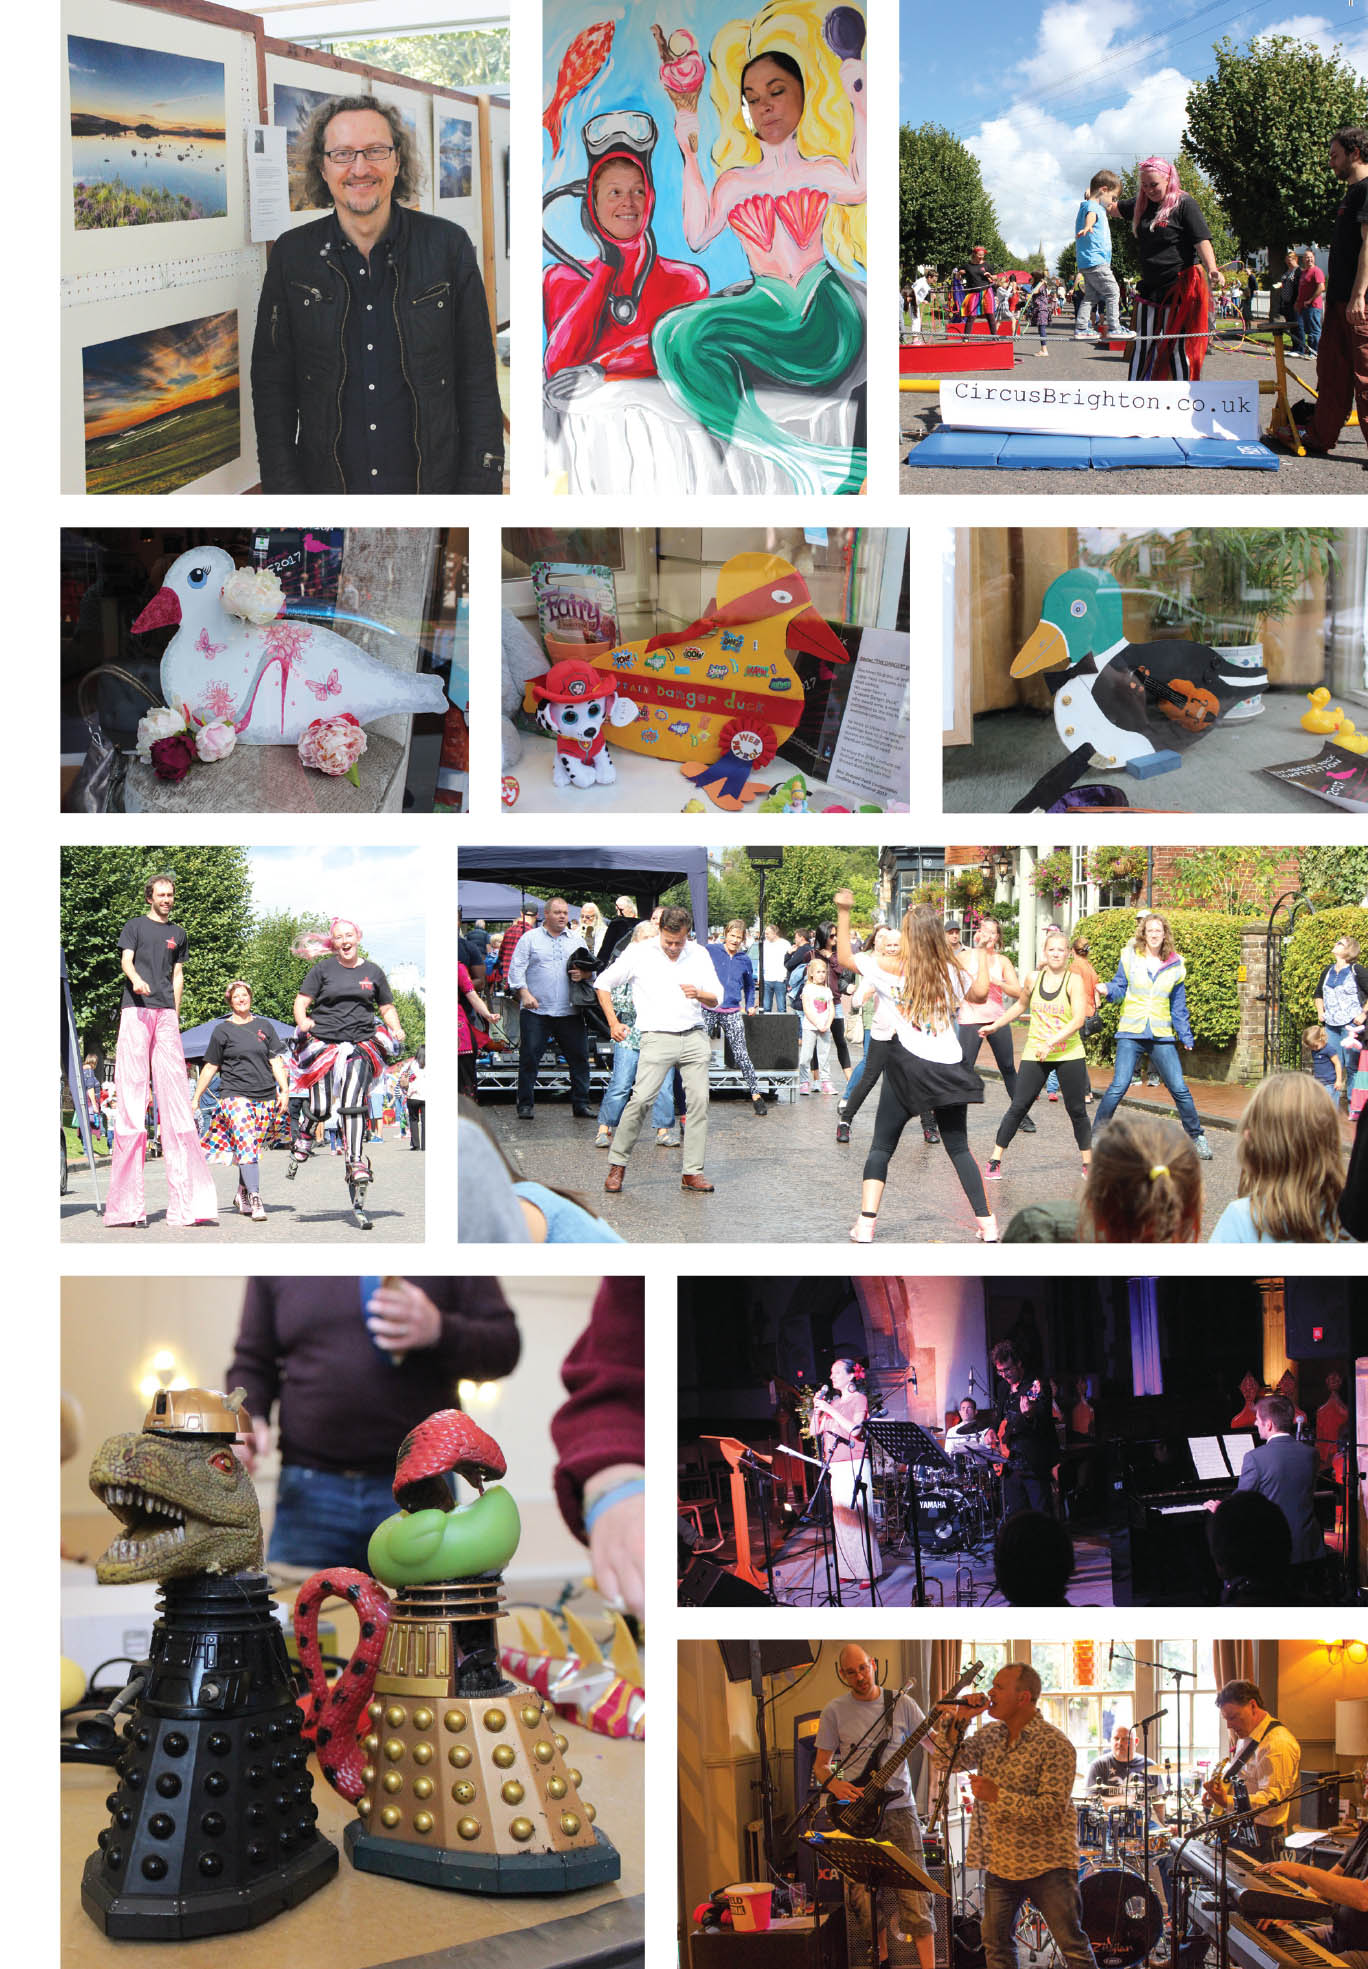 Lindfield-Arts-Festival-photos-2017.jpg